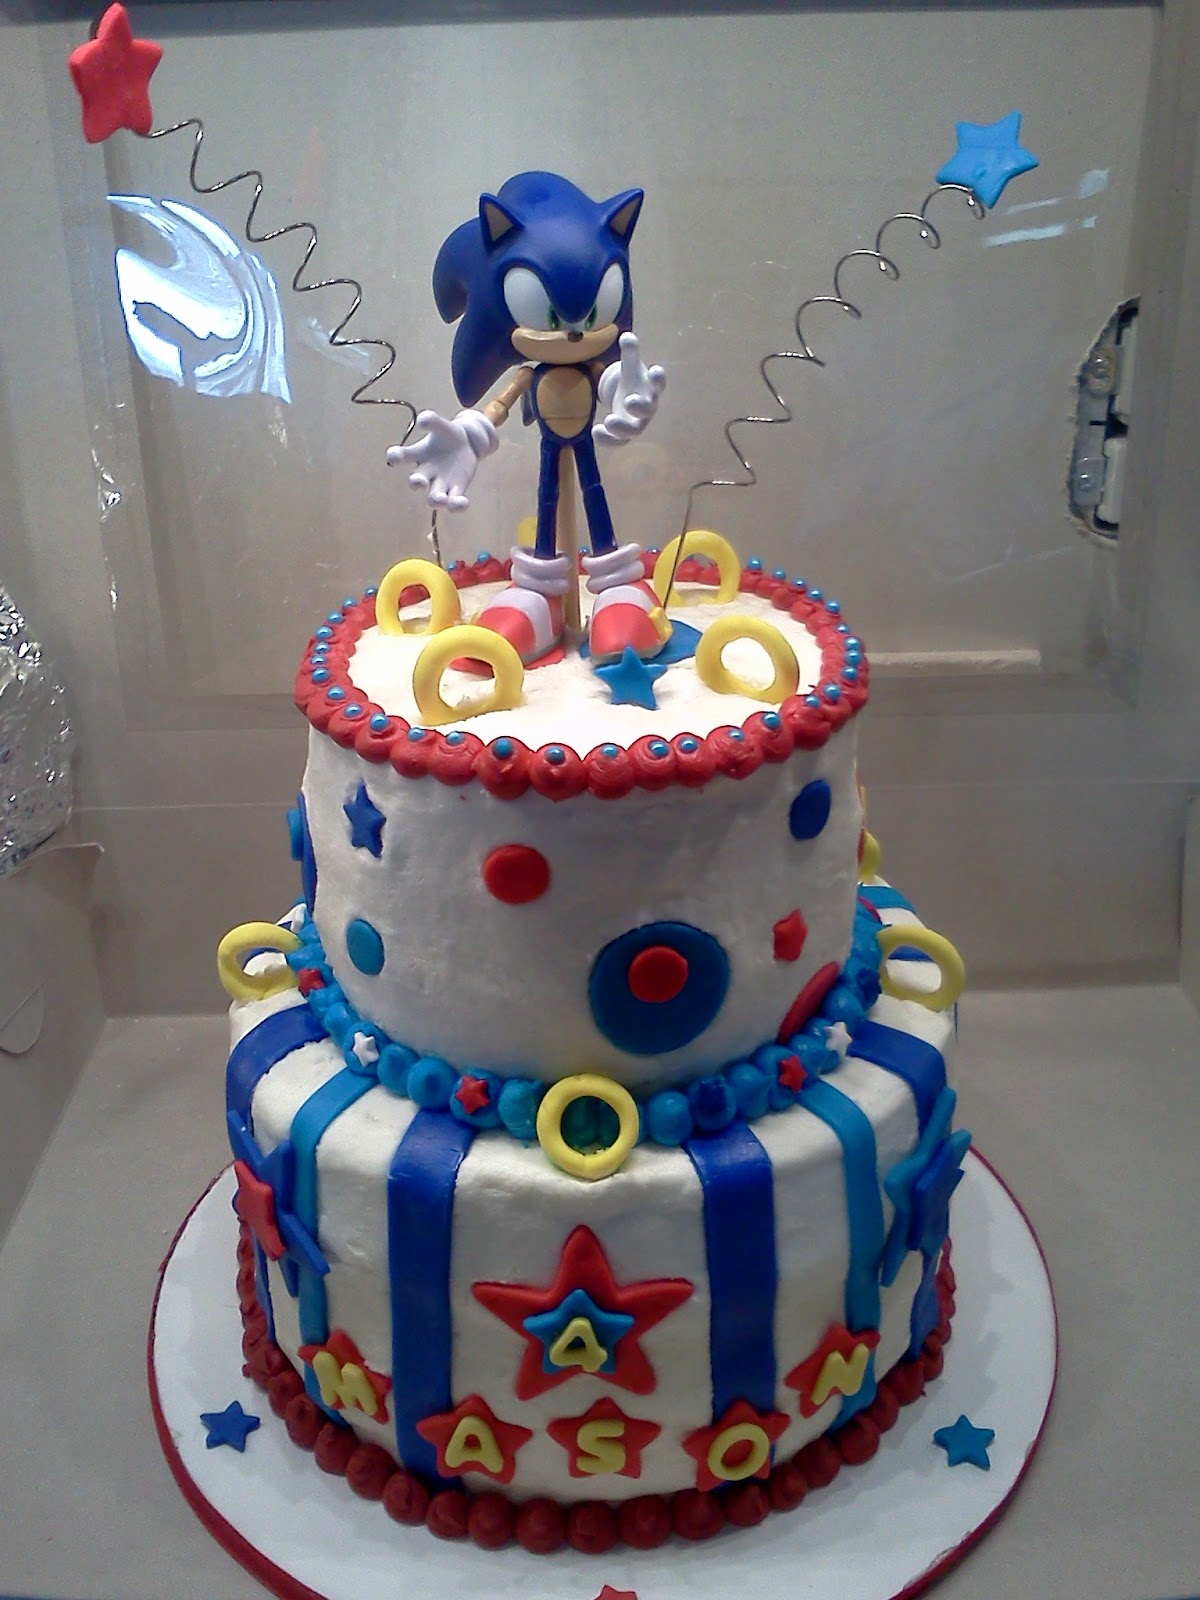 Sweet Treats by Angie: Sonic the Hedgehog Cake